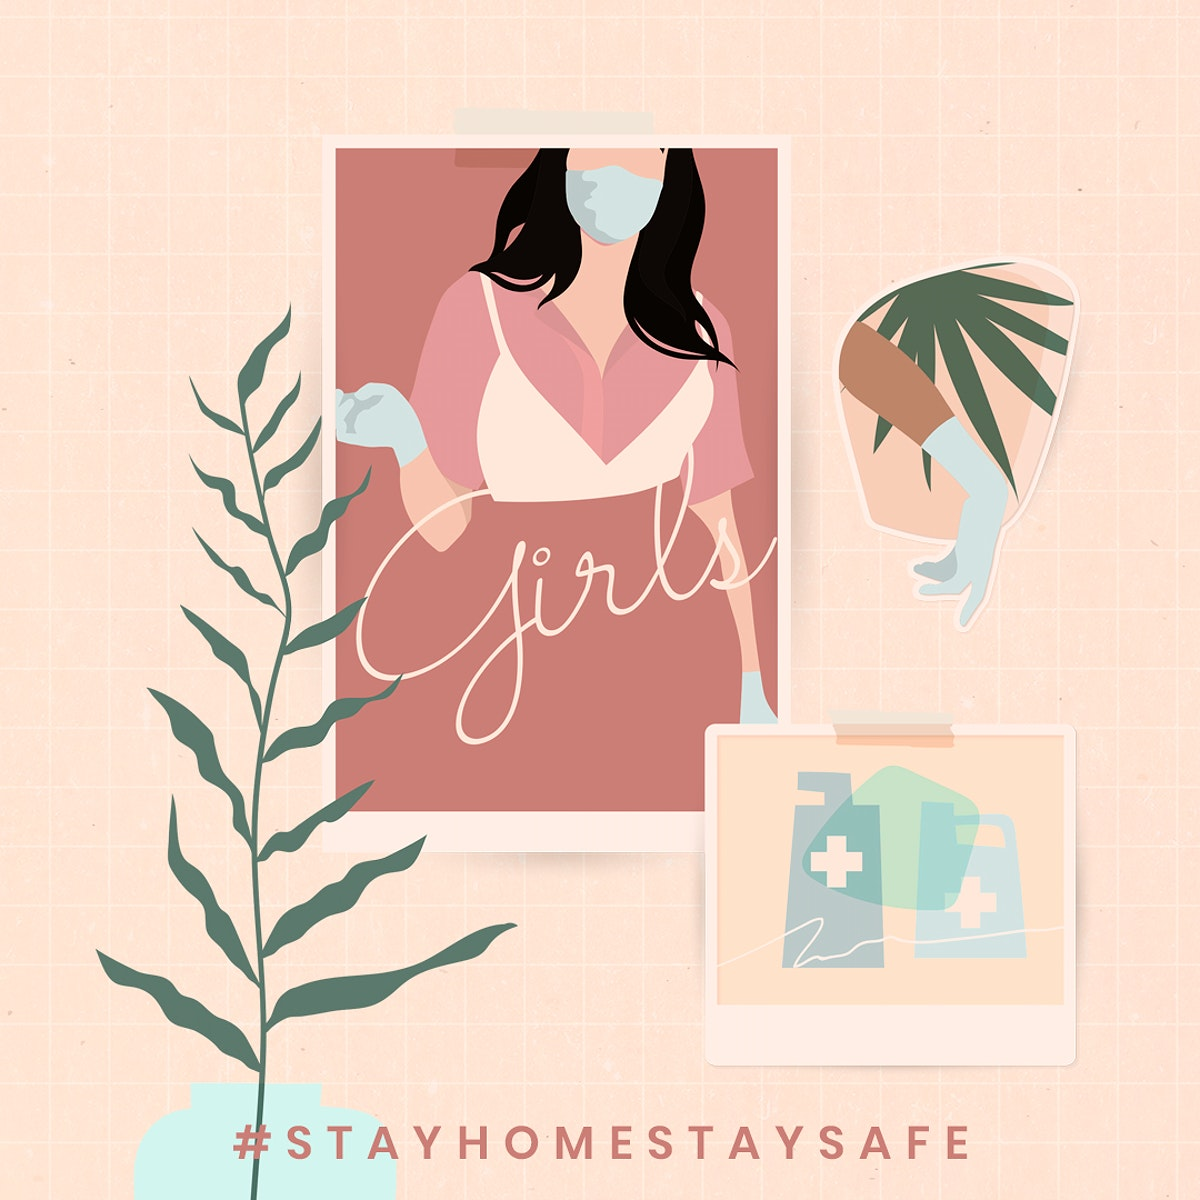 Stay home stay safe during COVID-19 social template illustration